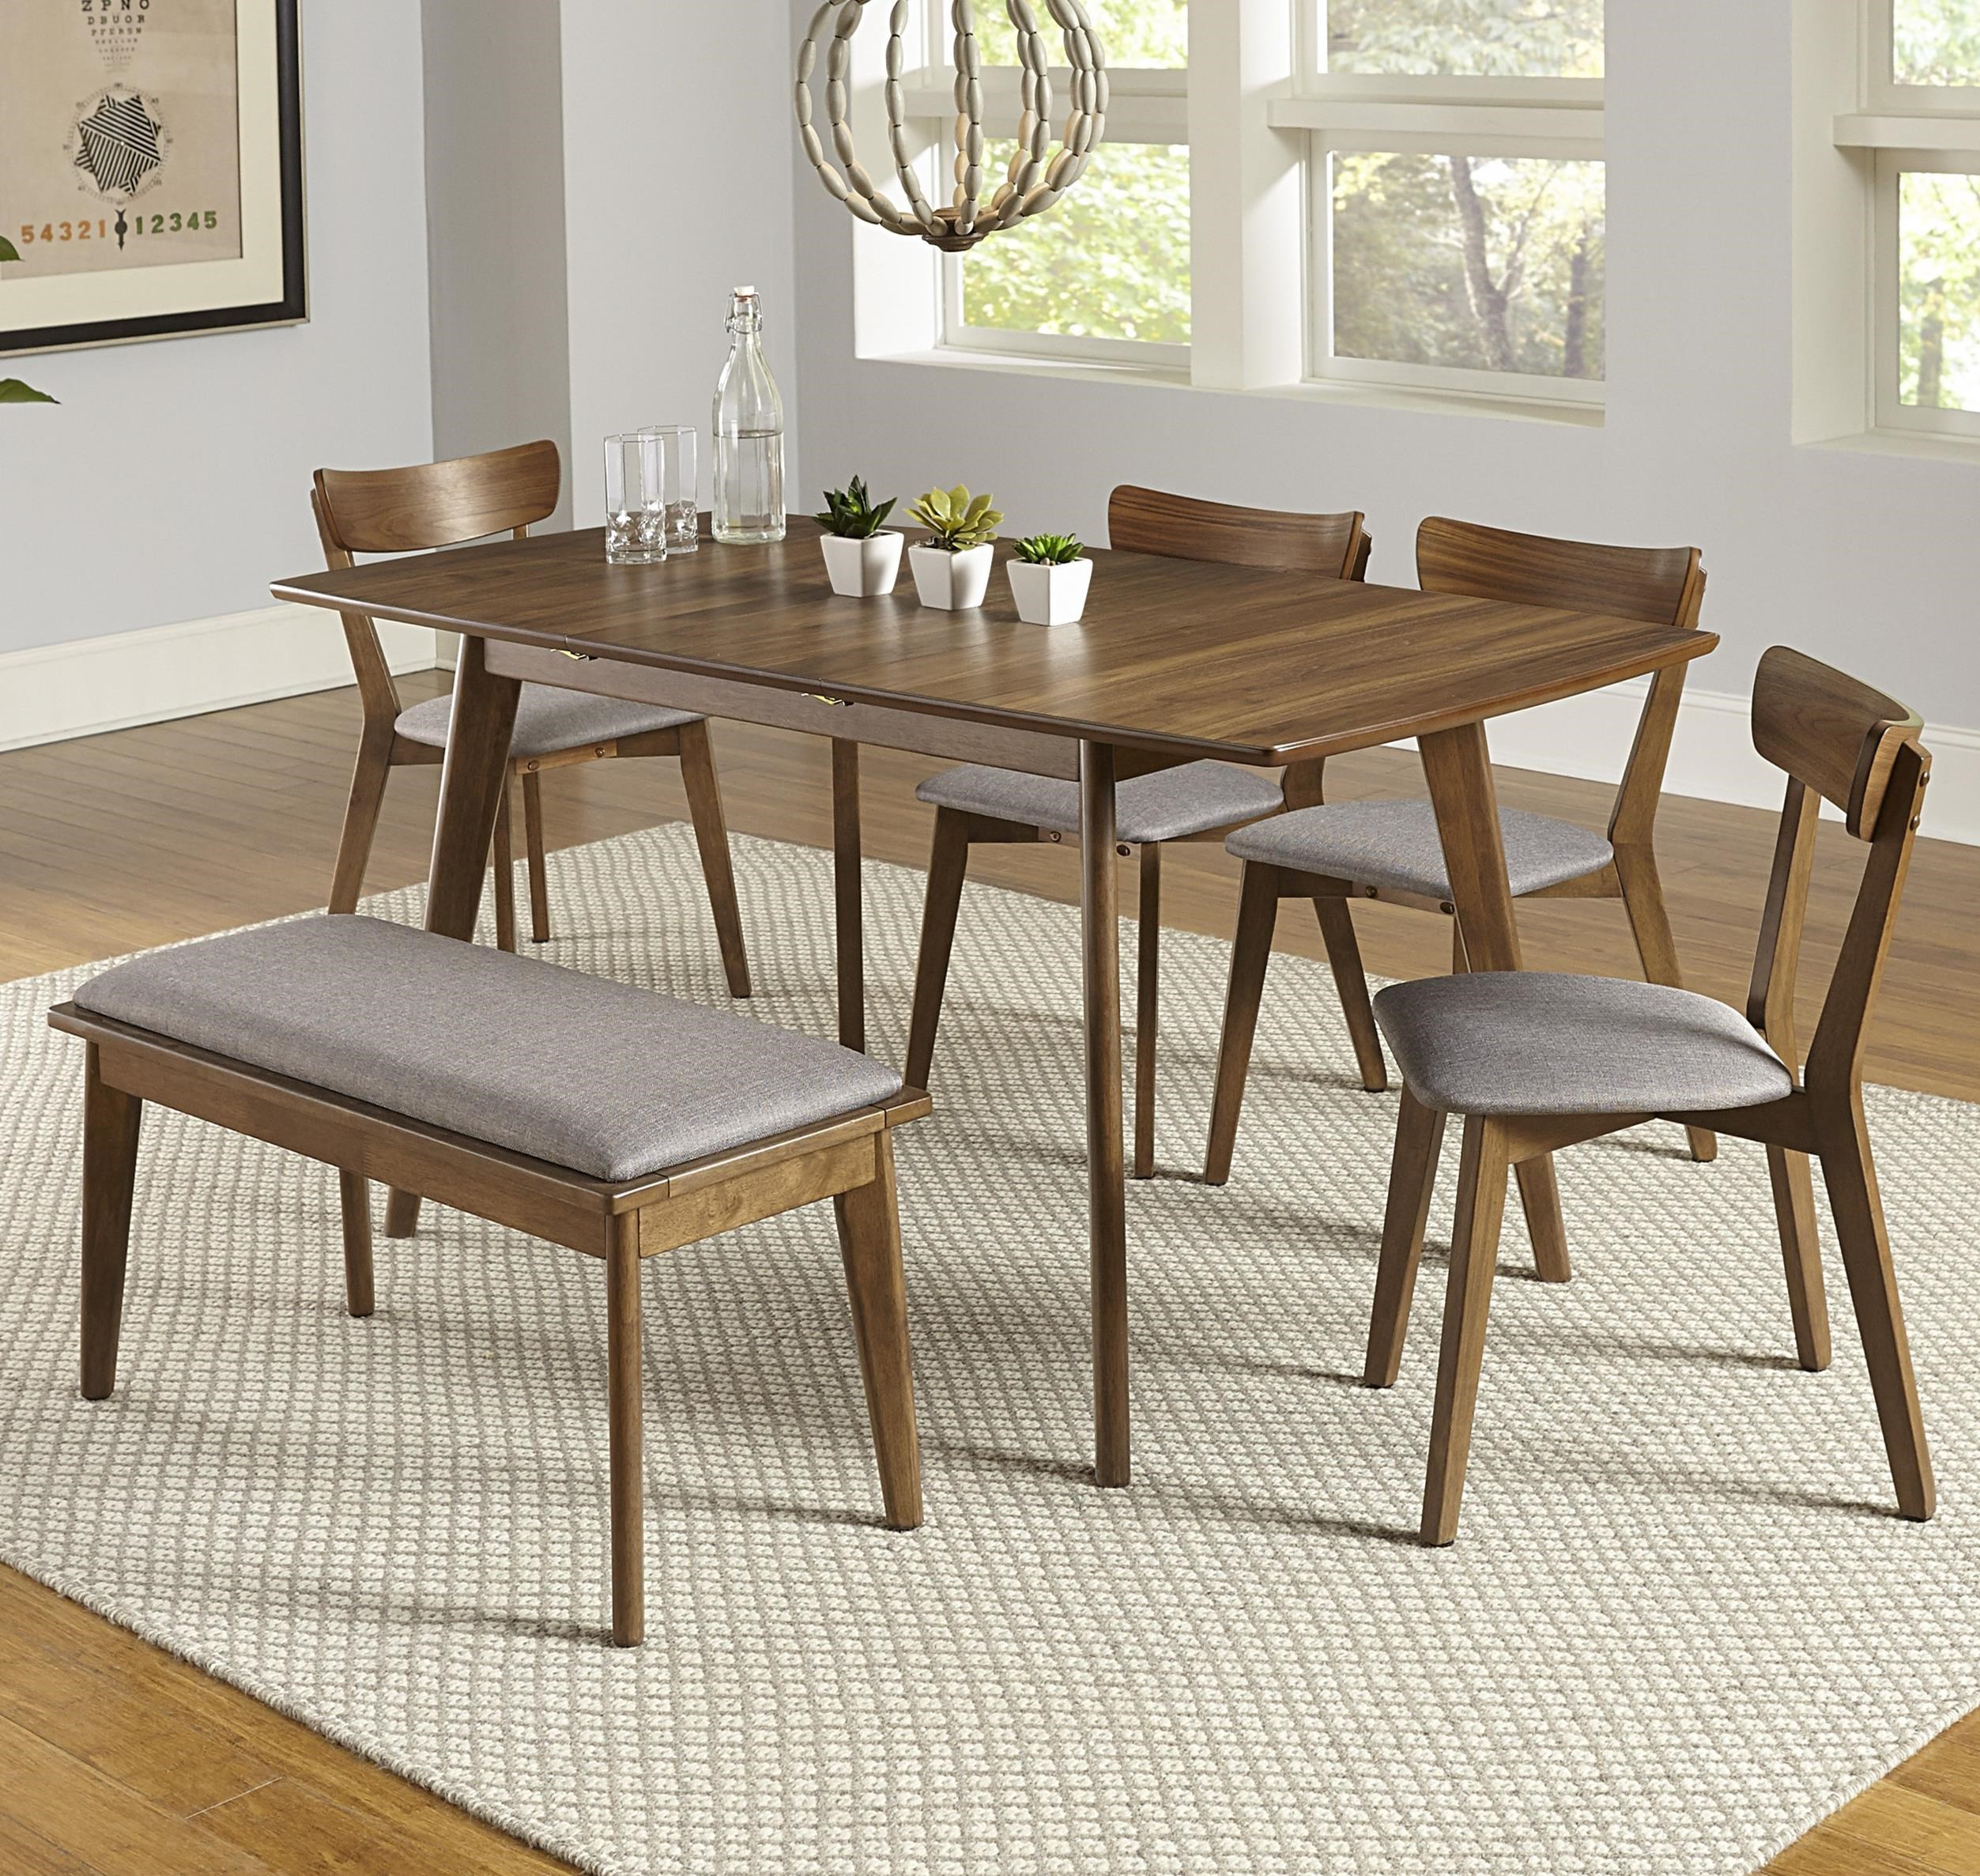 Arcade 6-Piece Butterfly Table Set with Bench by Progressive Furniture at Carolina Direct